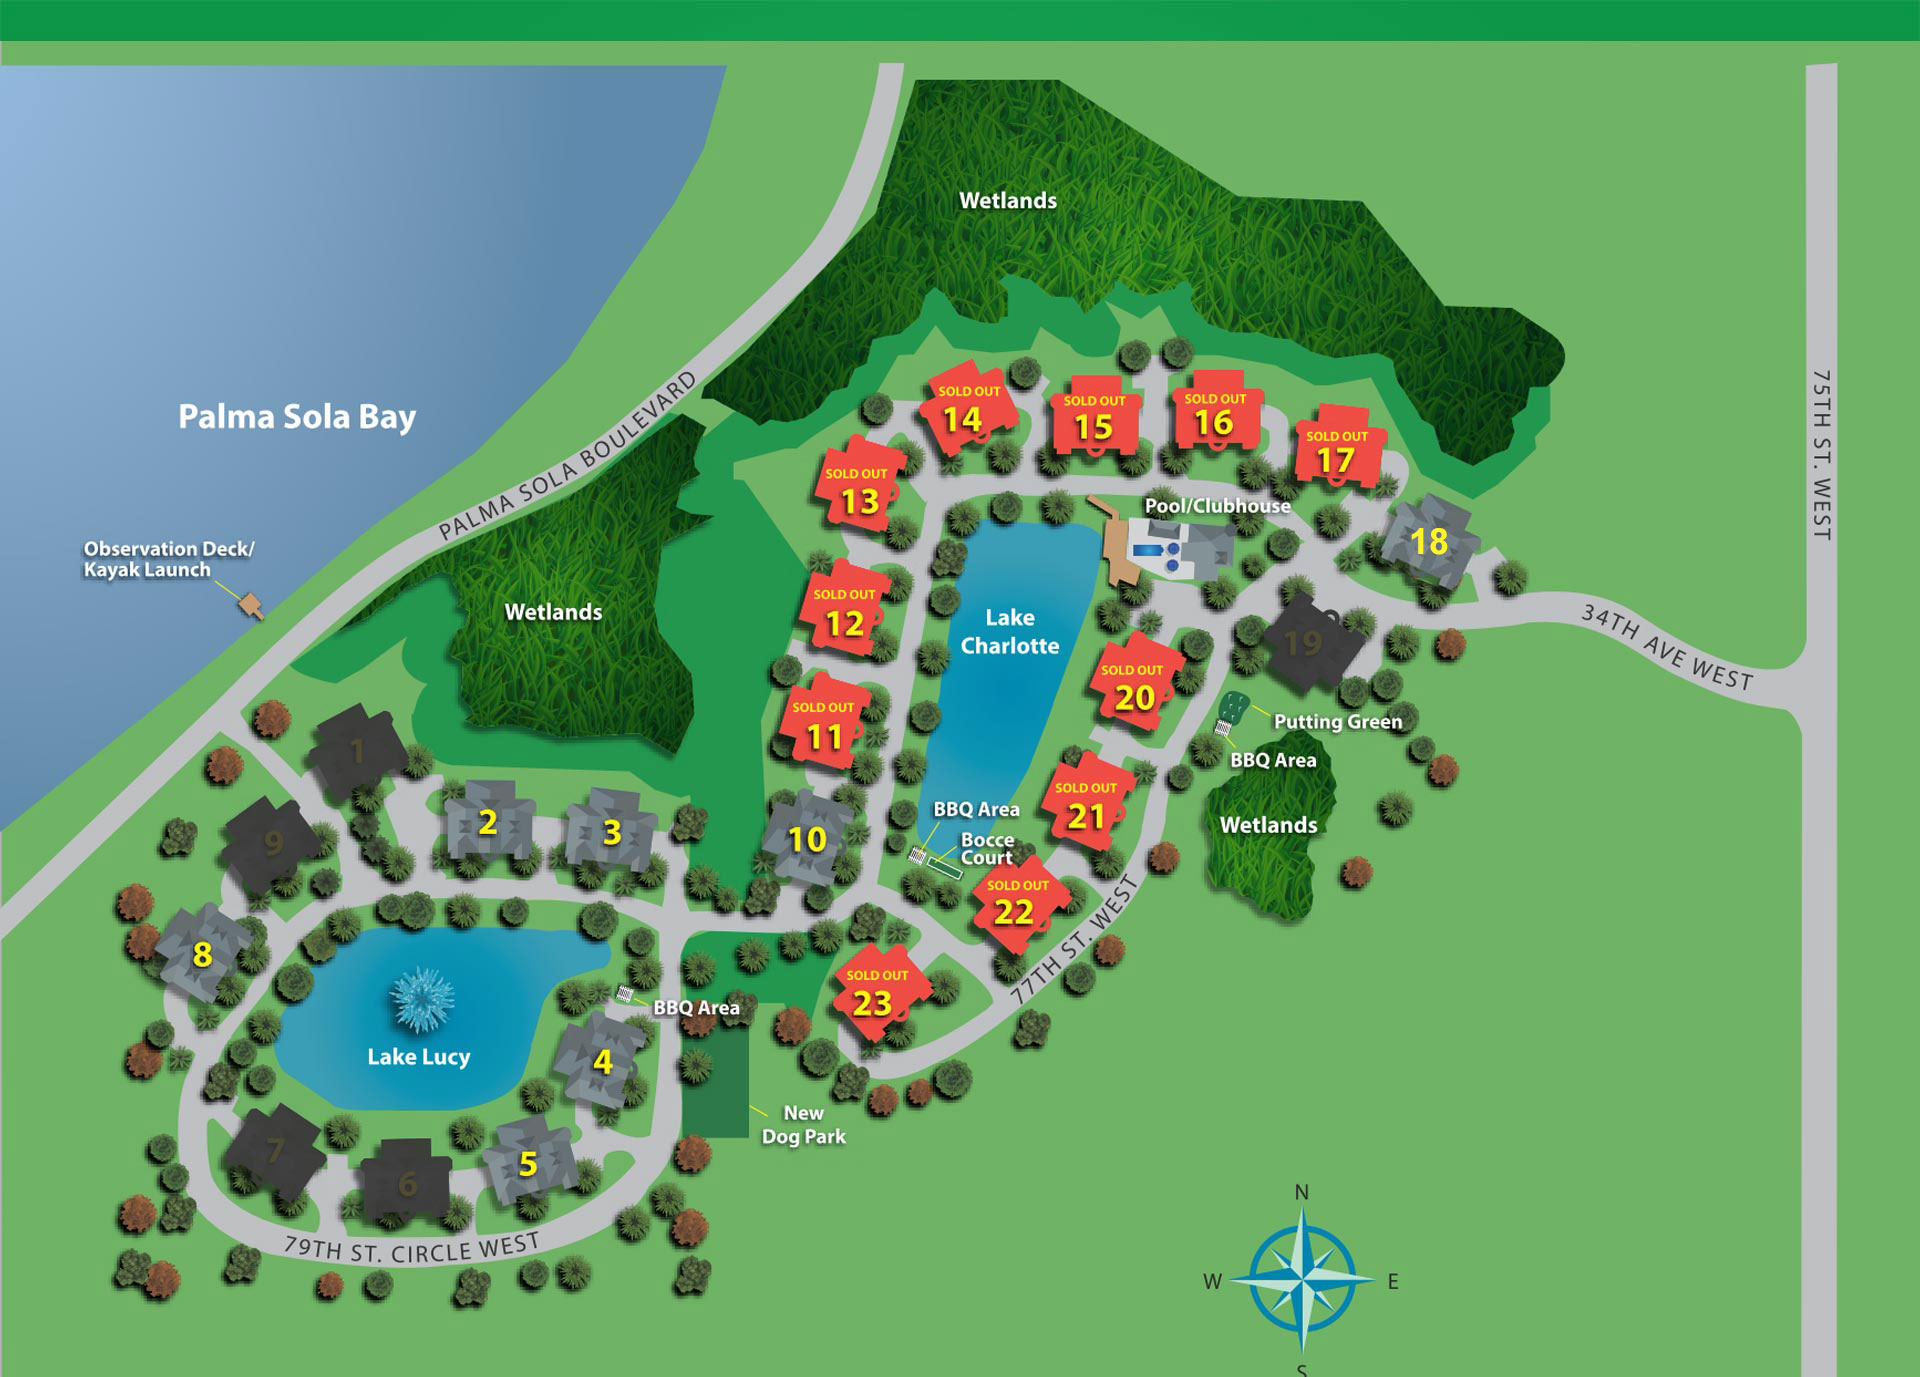 palma sola bay club site map